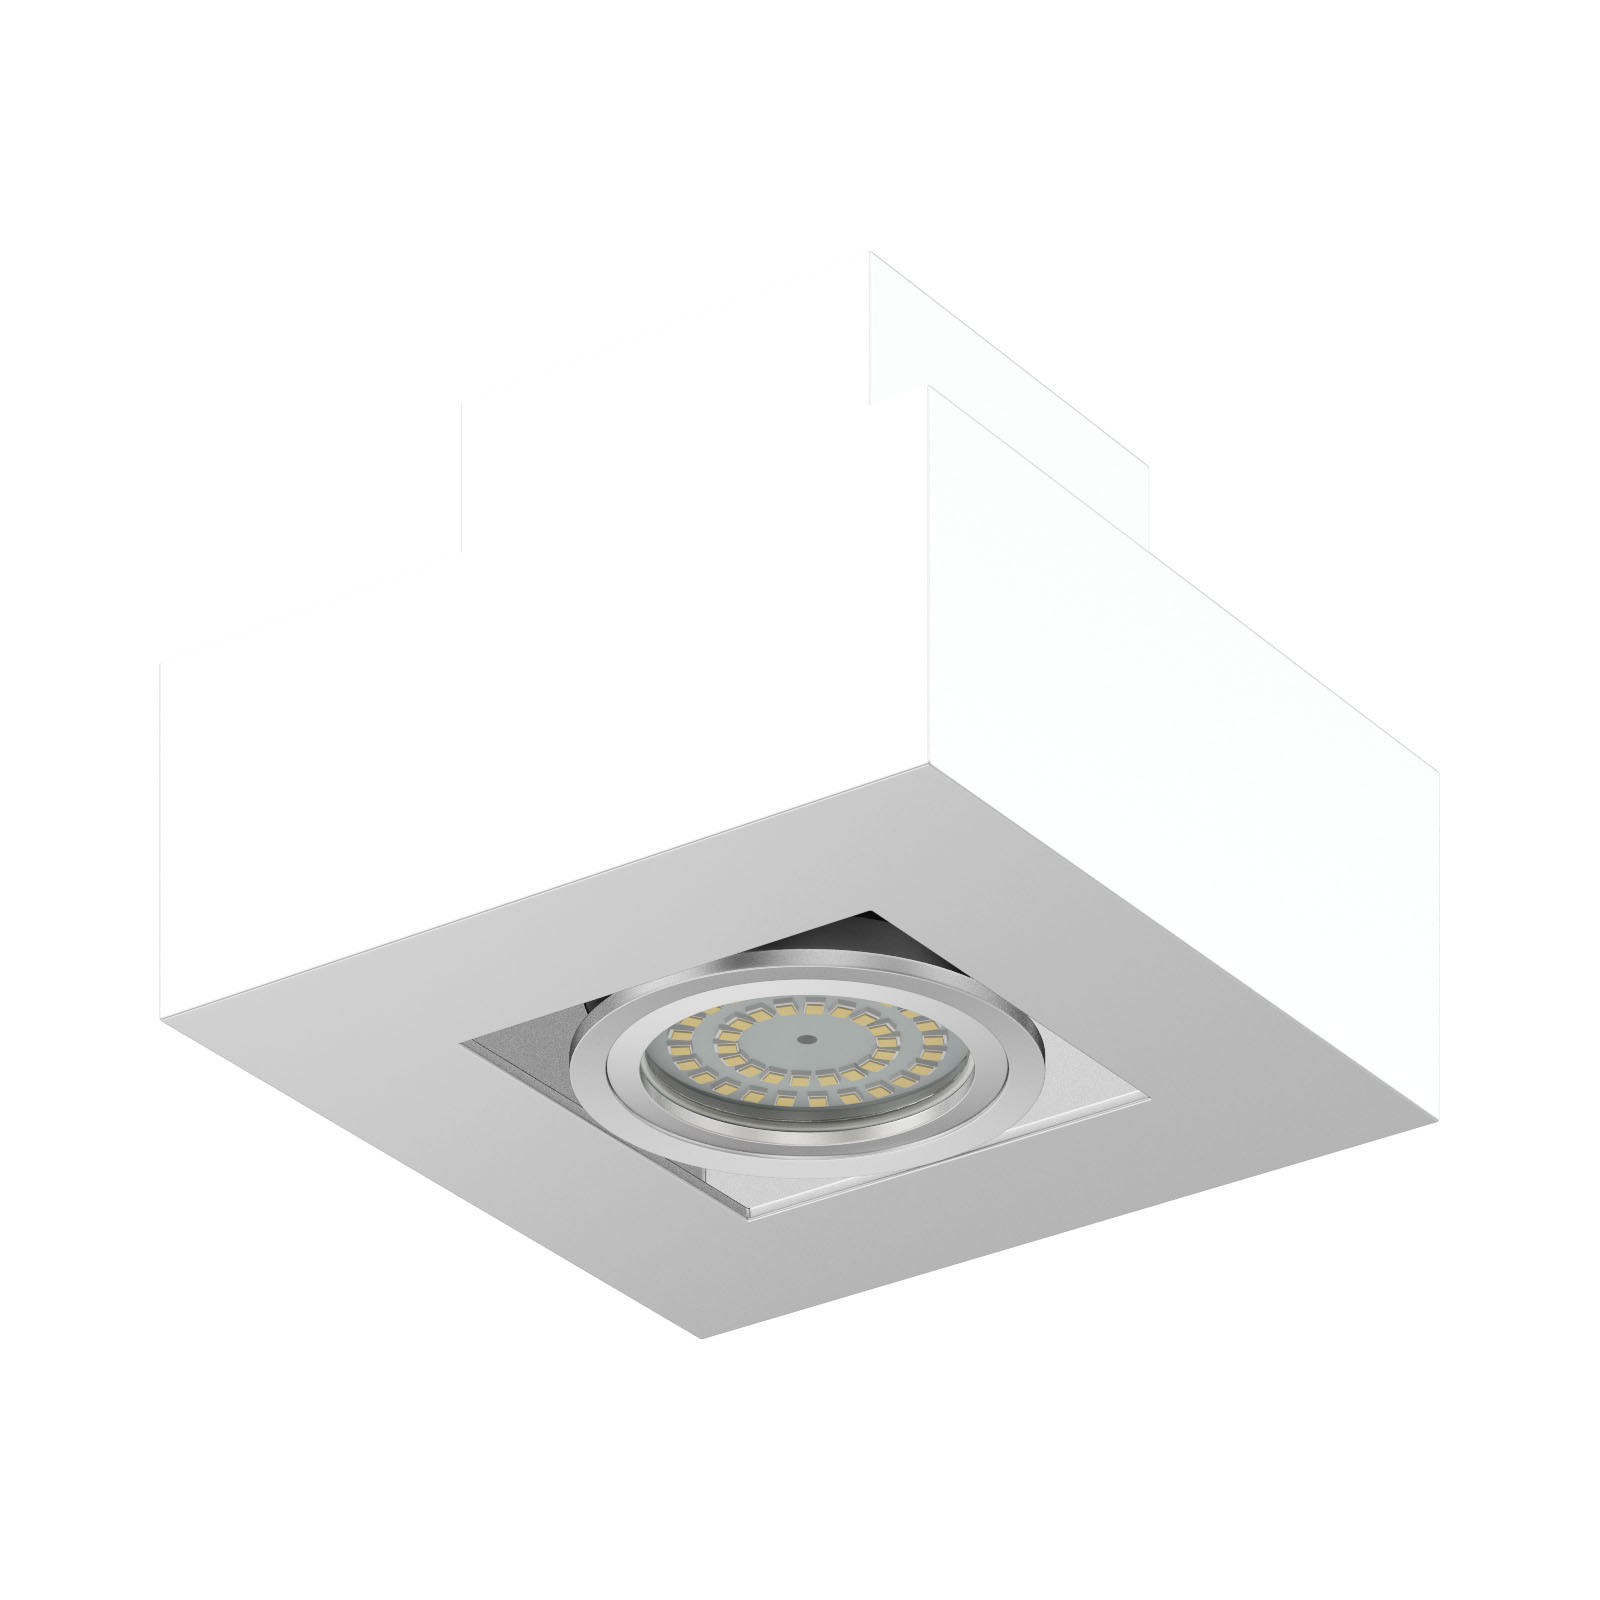 Rectangular Halogen Light 3D Model